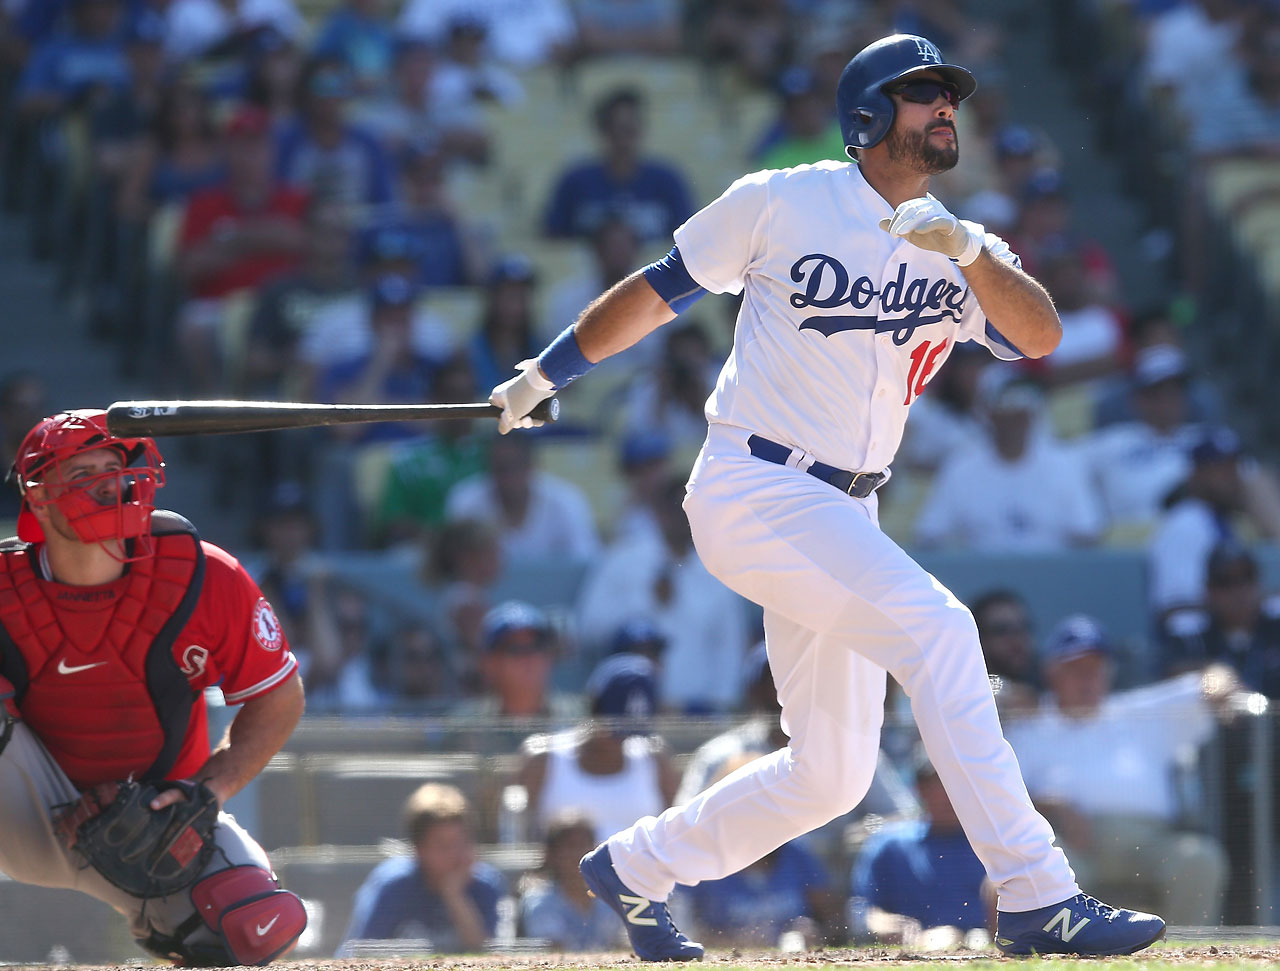 Andre Ethier watches his two-run home run leave the stadium in the 10th inning to give the Dodgers a 5-3 victory over the Angels.